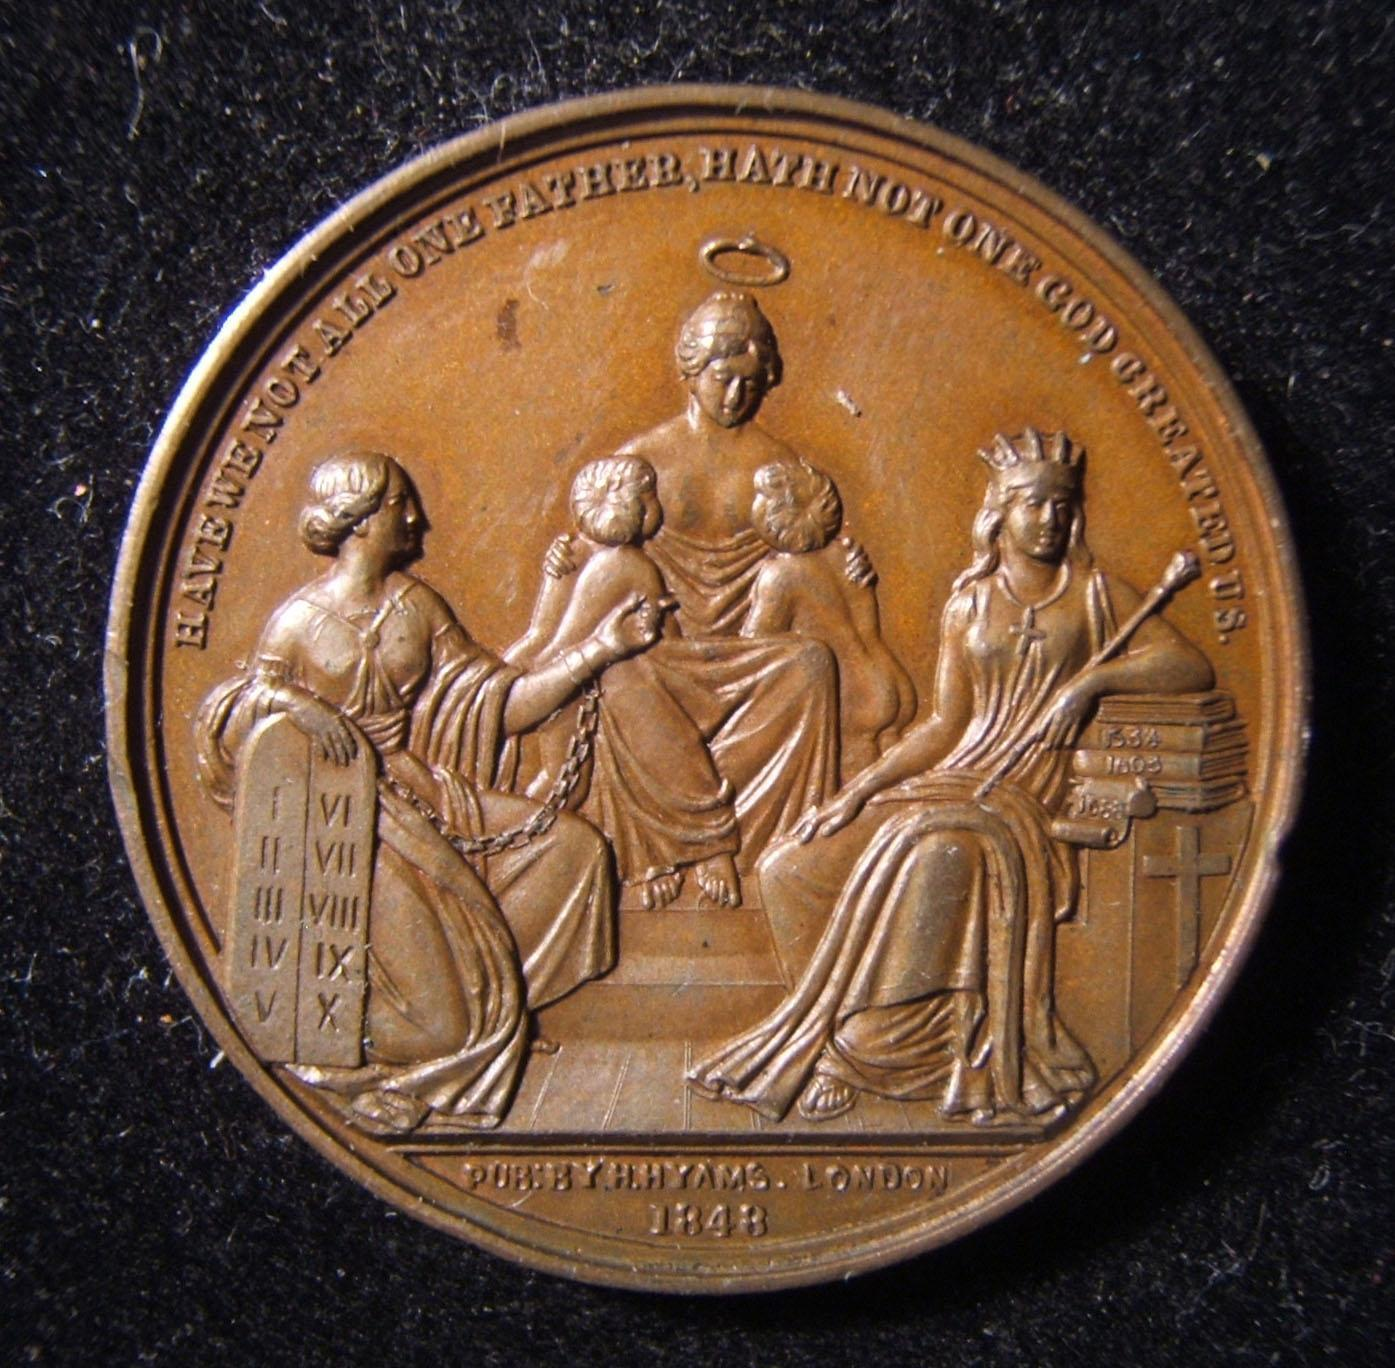 Great Britain: Lord John Russell/ Jewish emancipation bronze medal, 1848; by Allen & Moore; size: 31.5mm, weight: 14g. Obv.: right facing Lord Russell. Rev.: 'Divine Love' suck